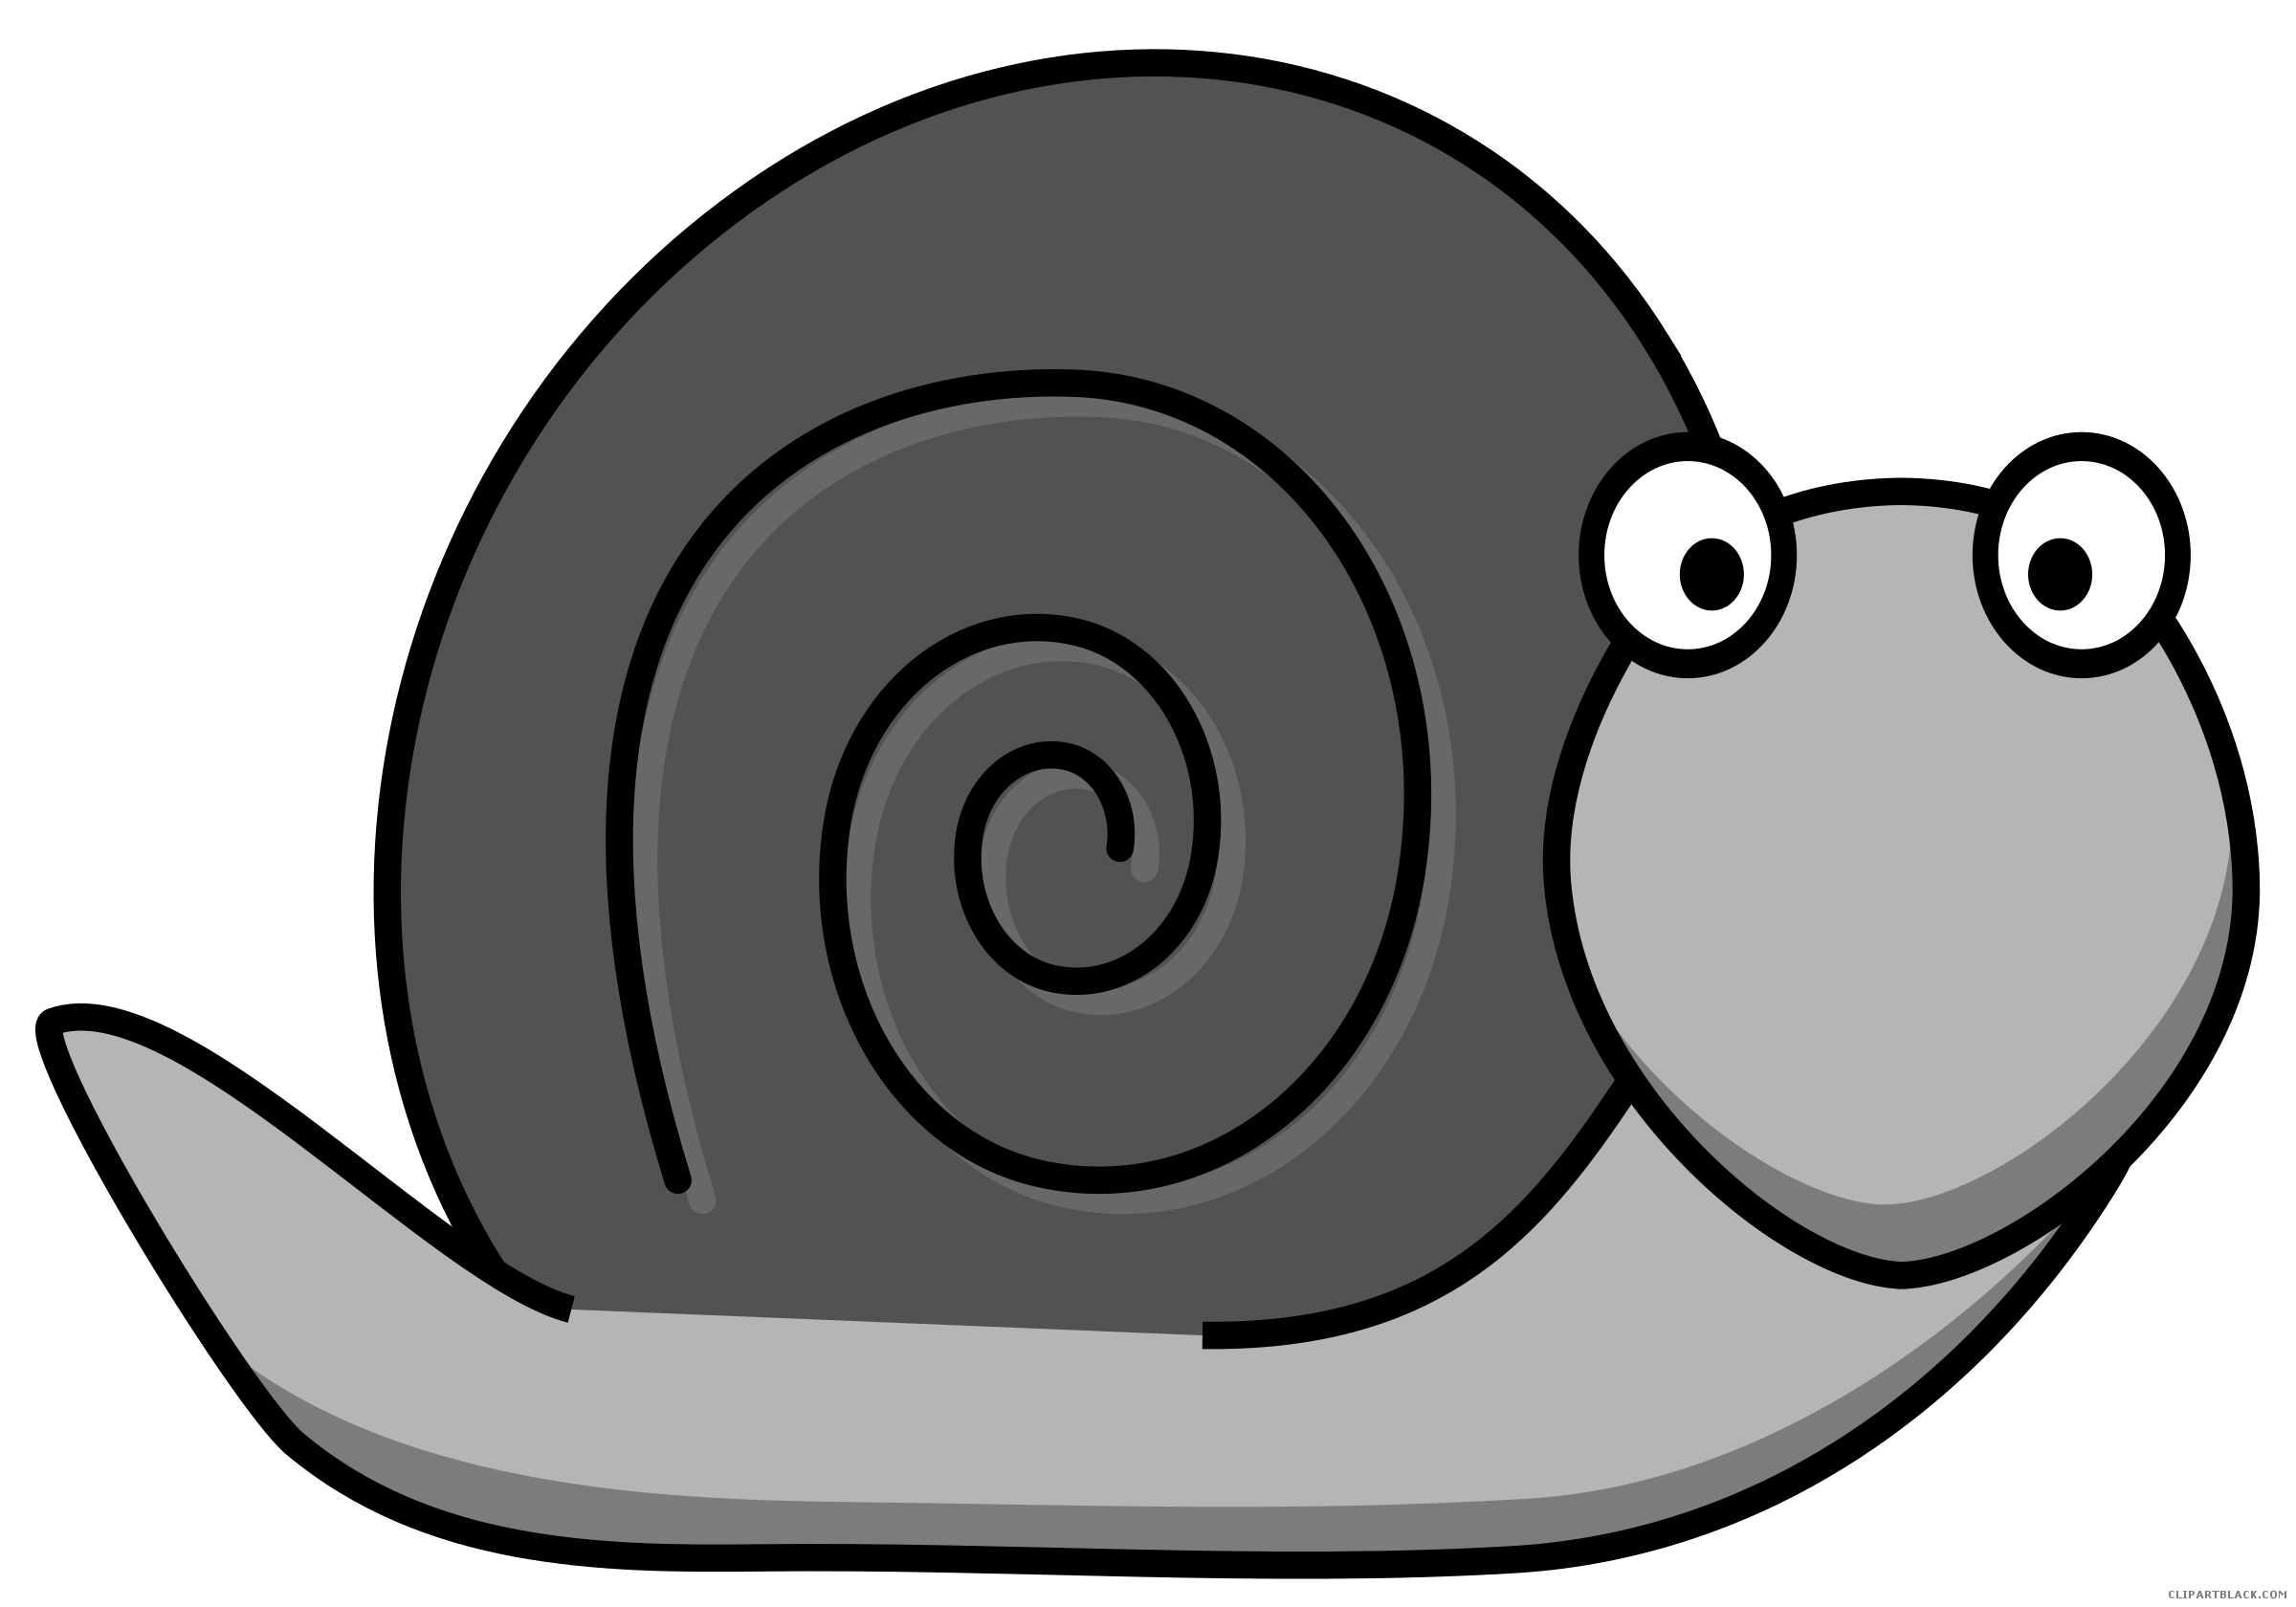 Cartoon snail animal free. Yak clipart trainer